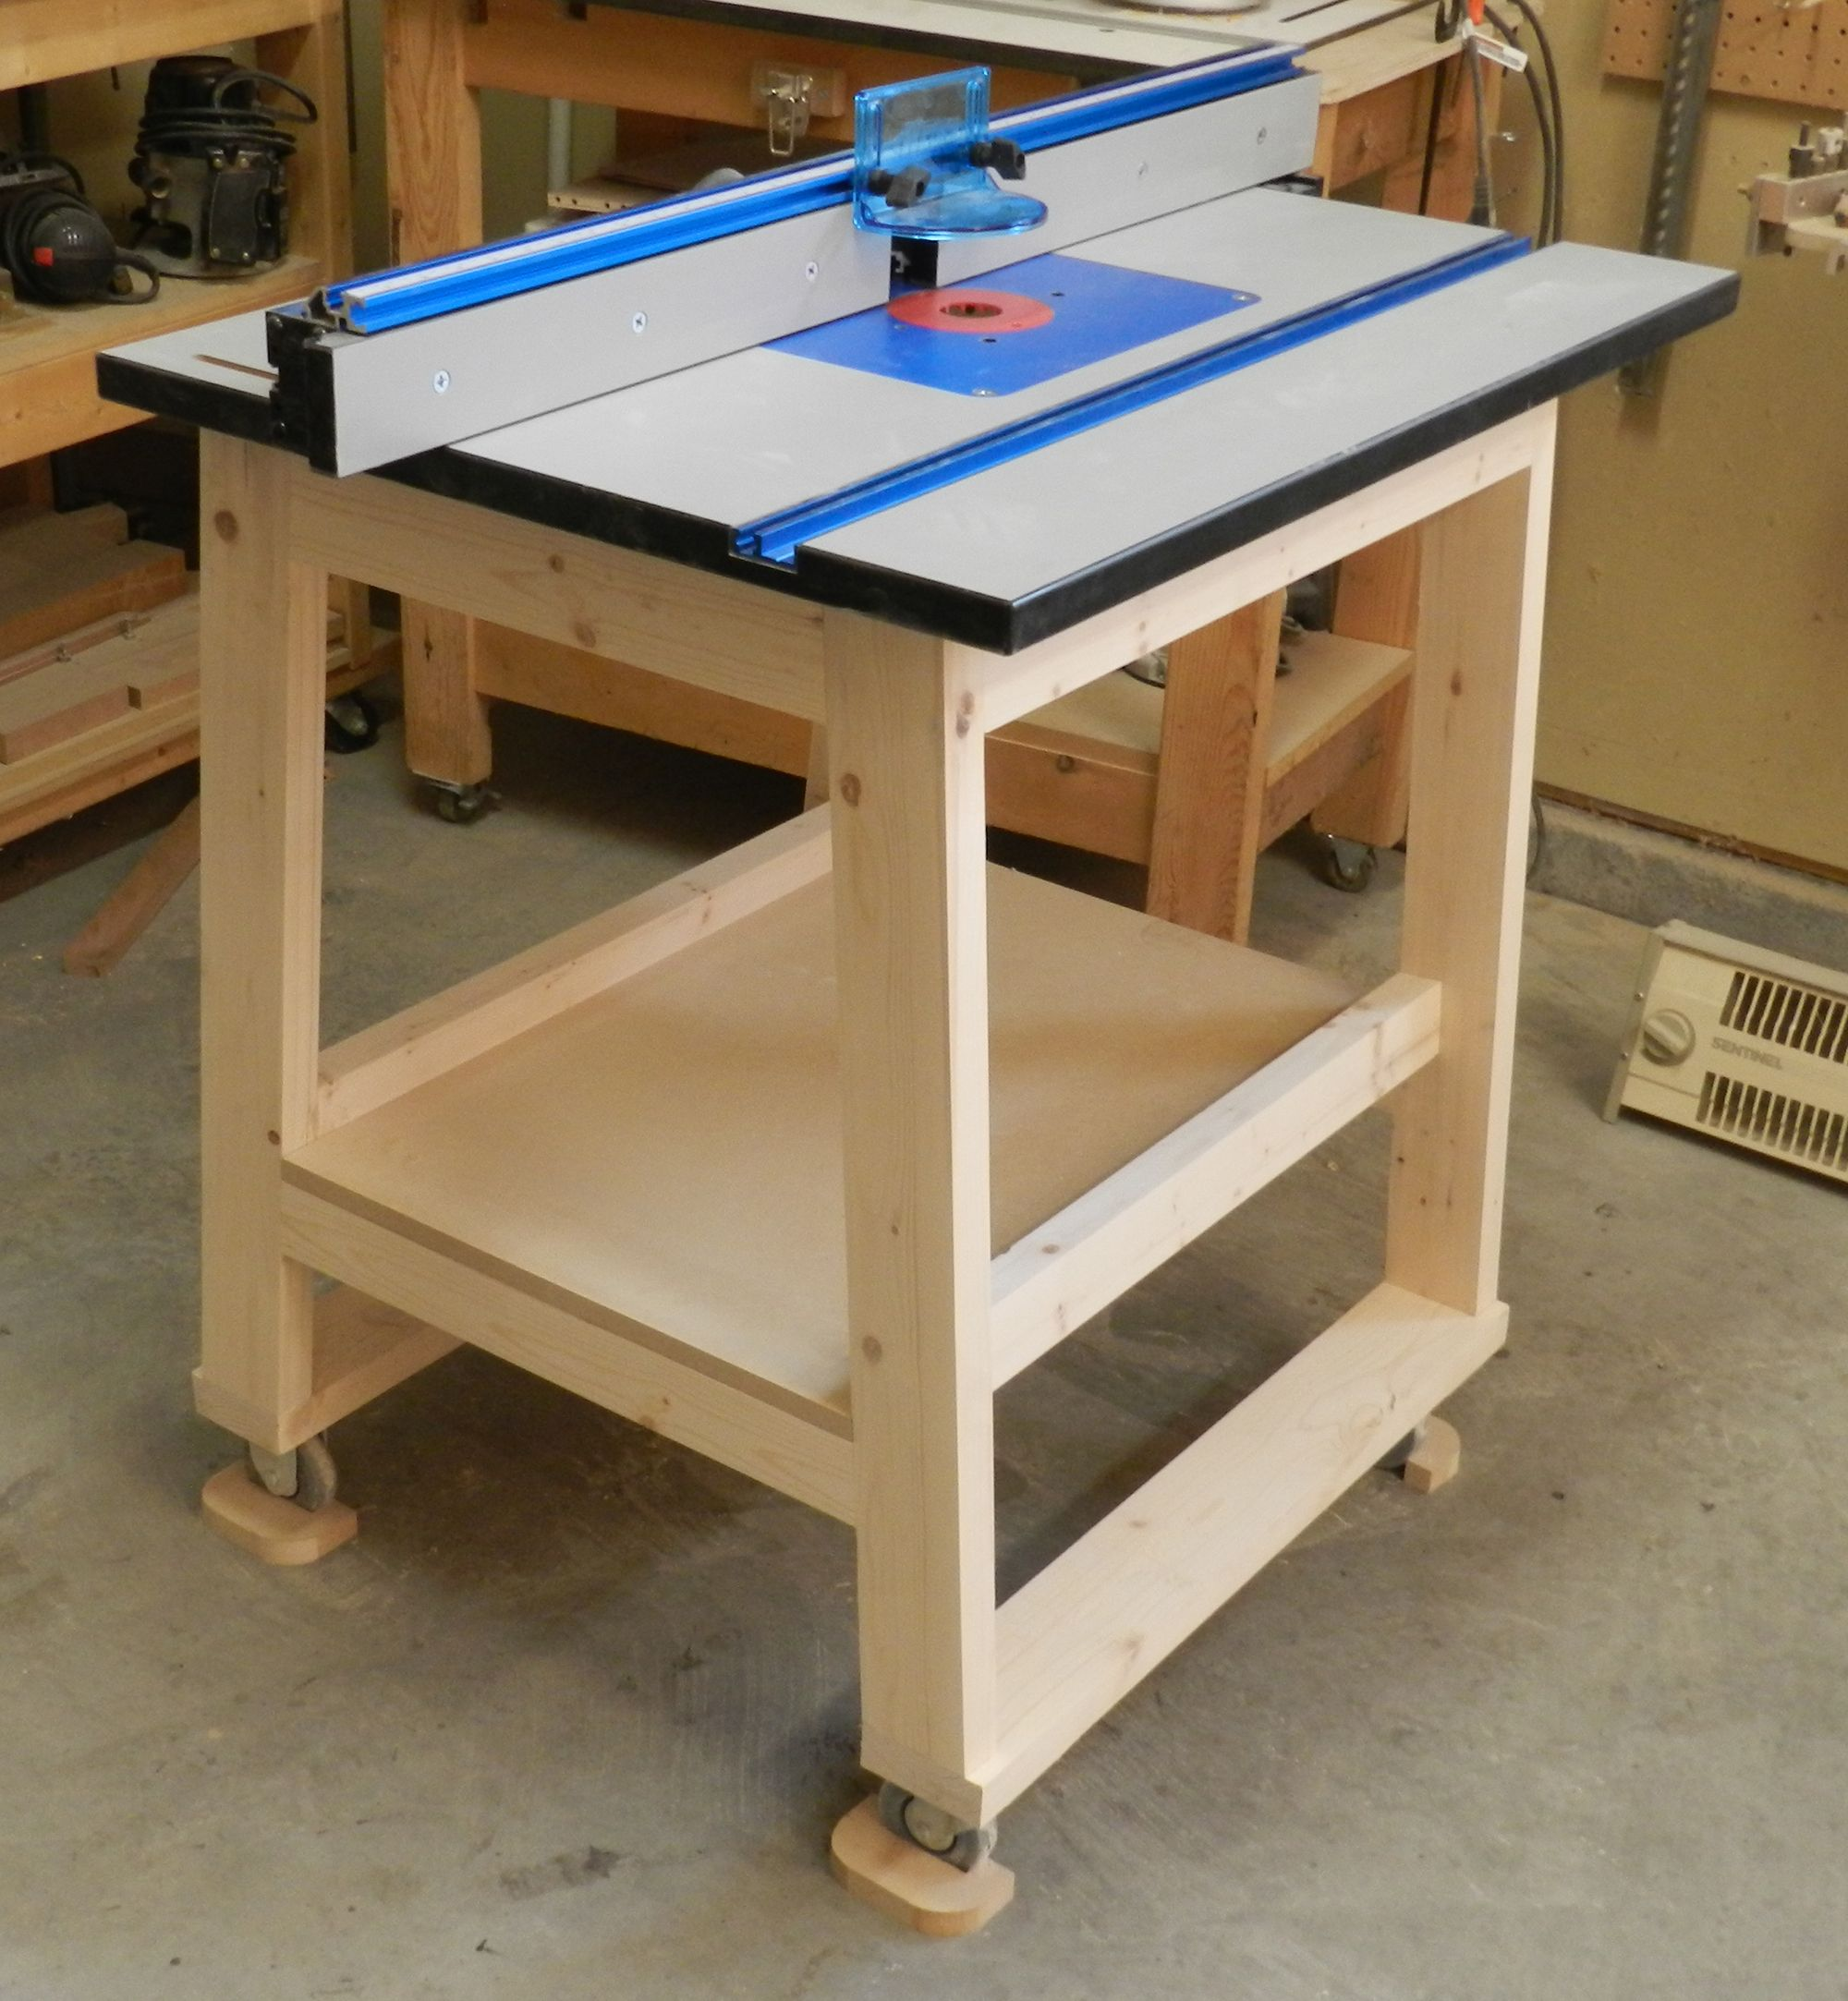 Wooden kreg router table plans diy blueprints kreg router table wooden kreg router table plans diy blueprints kreg router table plans 2 in 1 outdoor games keyboard keysfo Image collections